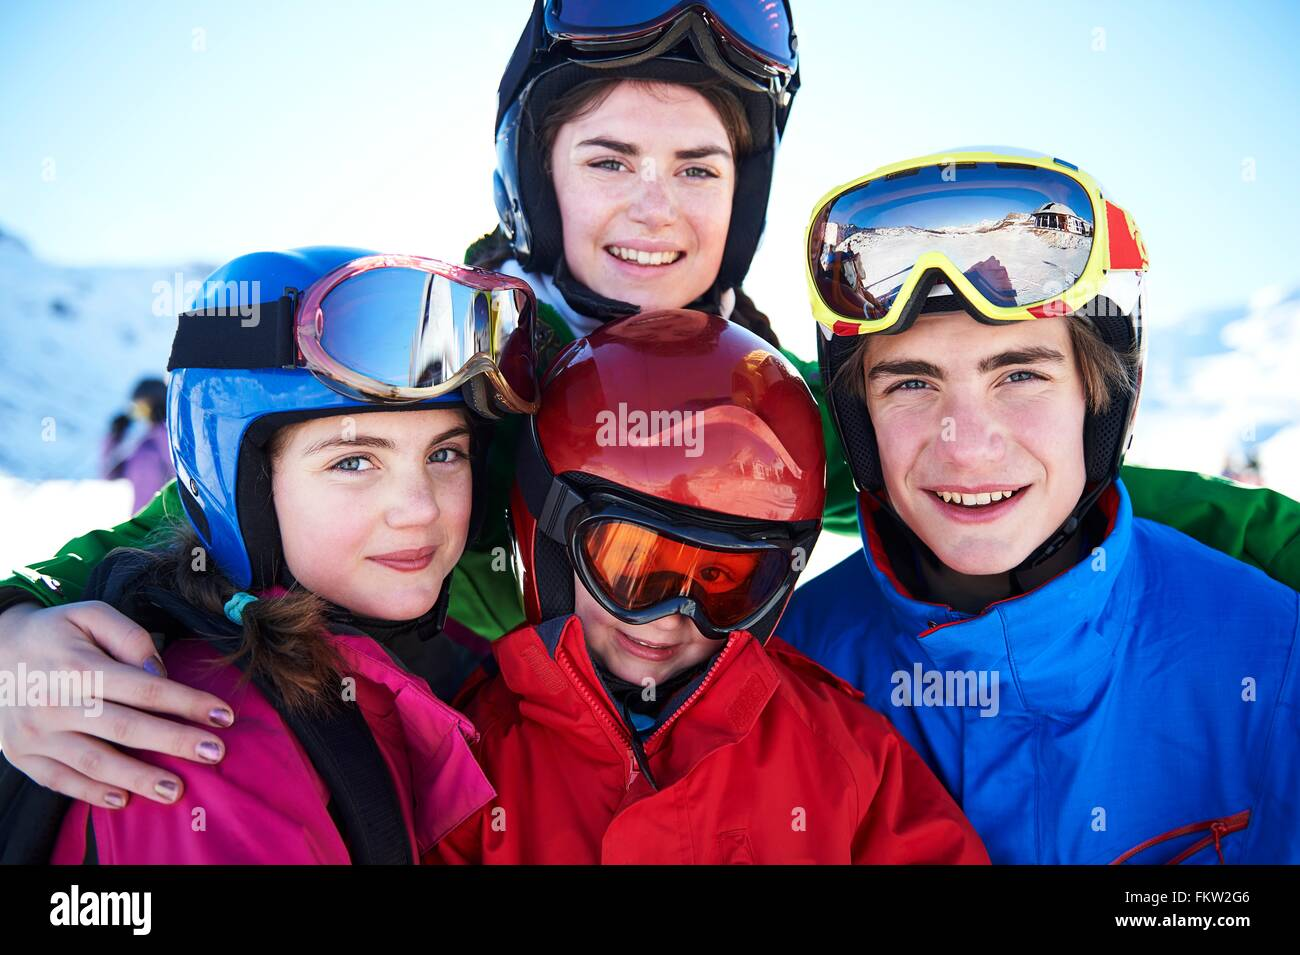 Sisters and brothers on skiing holiday - Stock Image